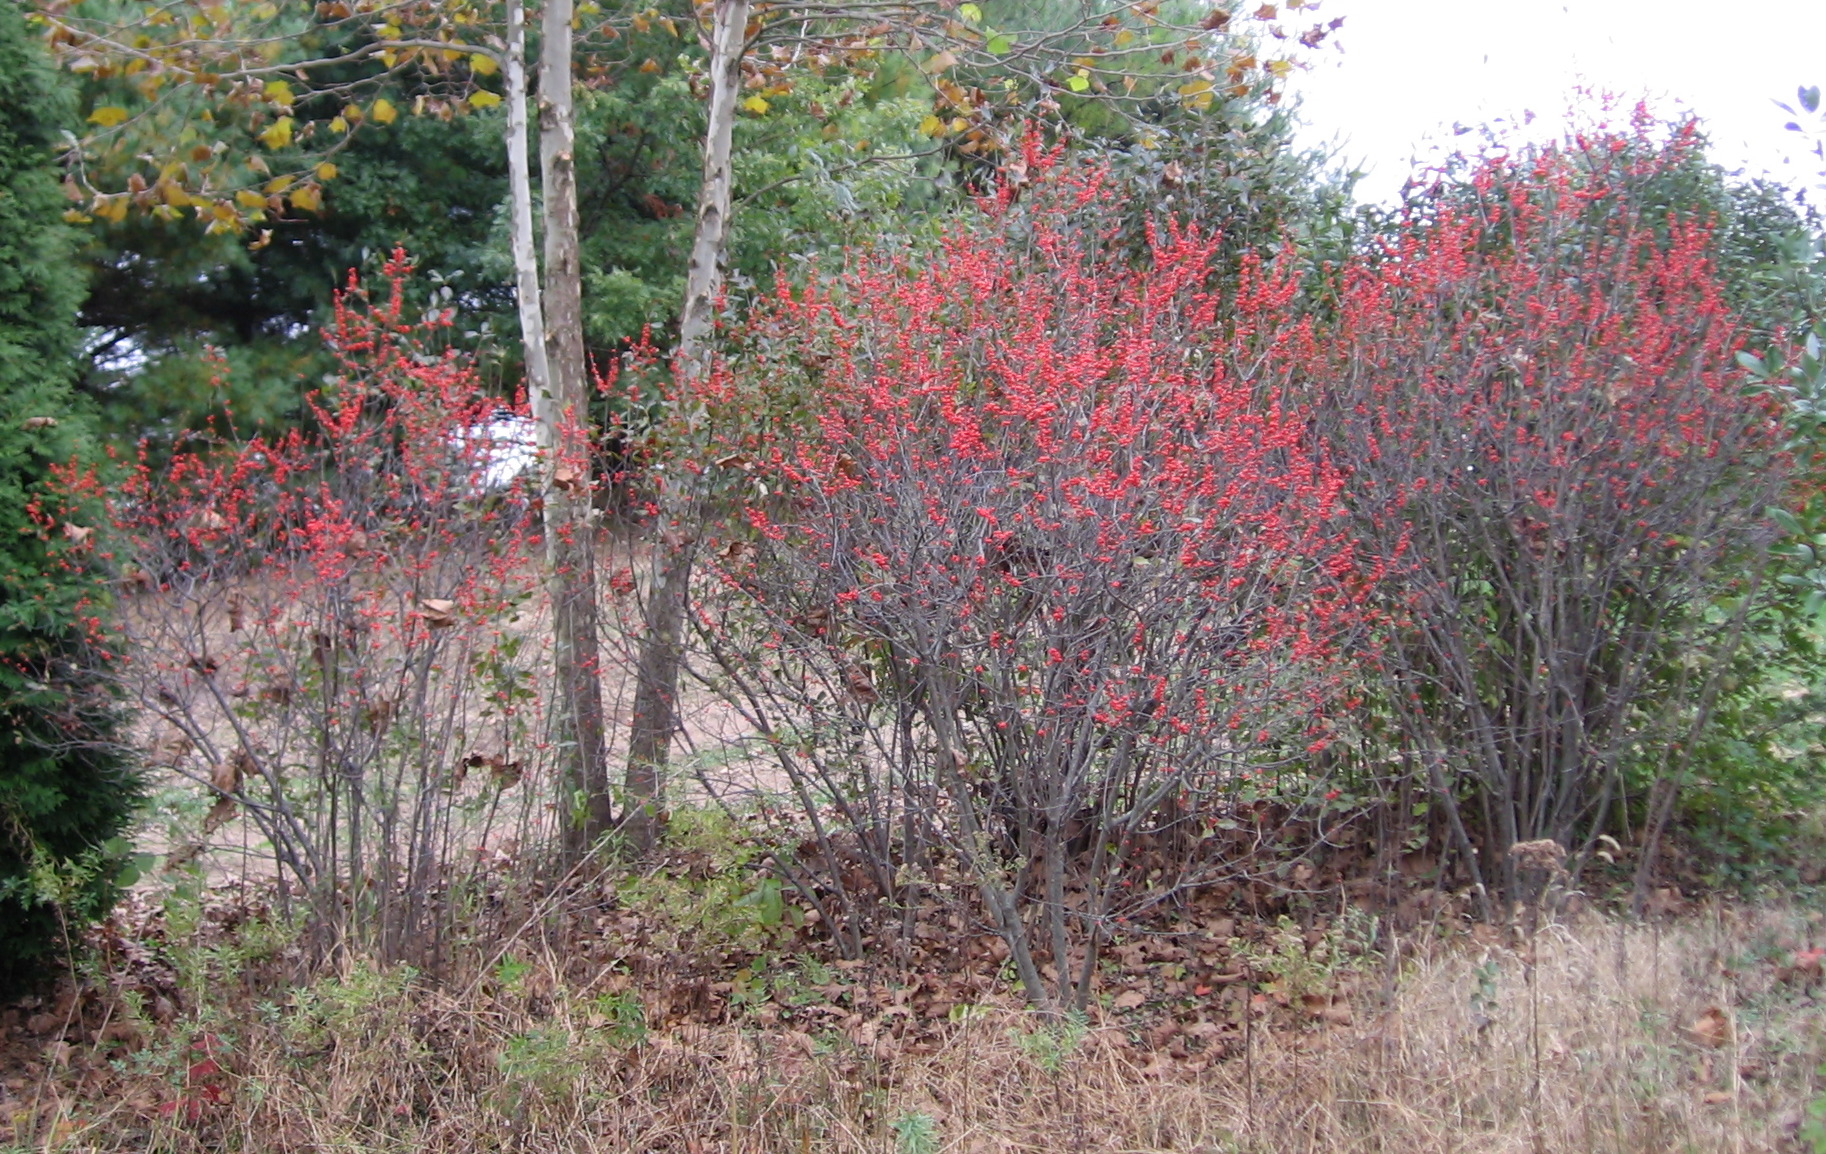 'Tiasquam' Bushes